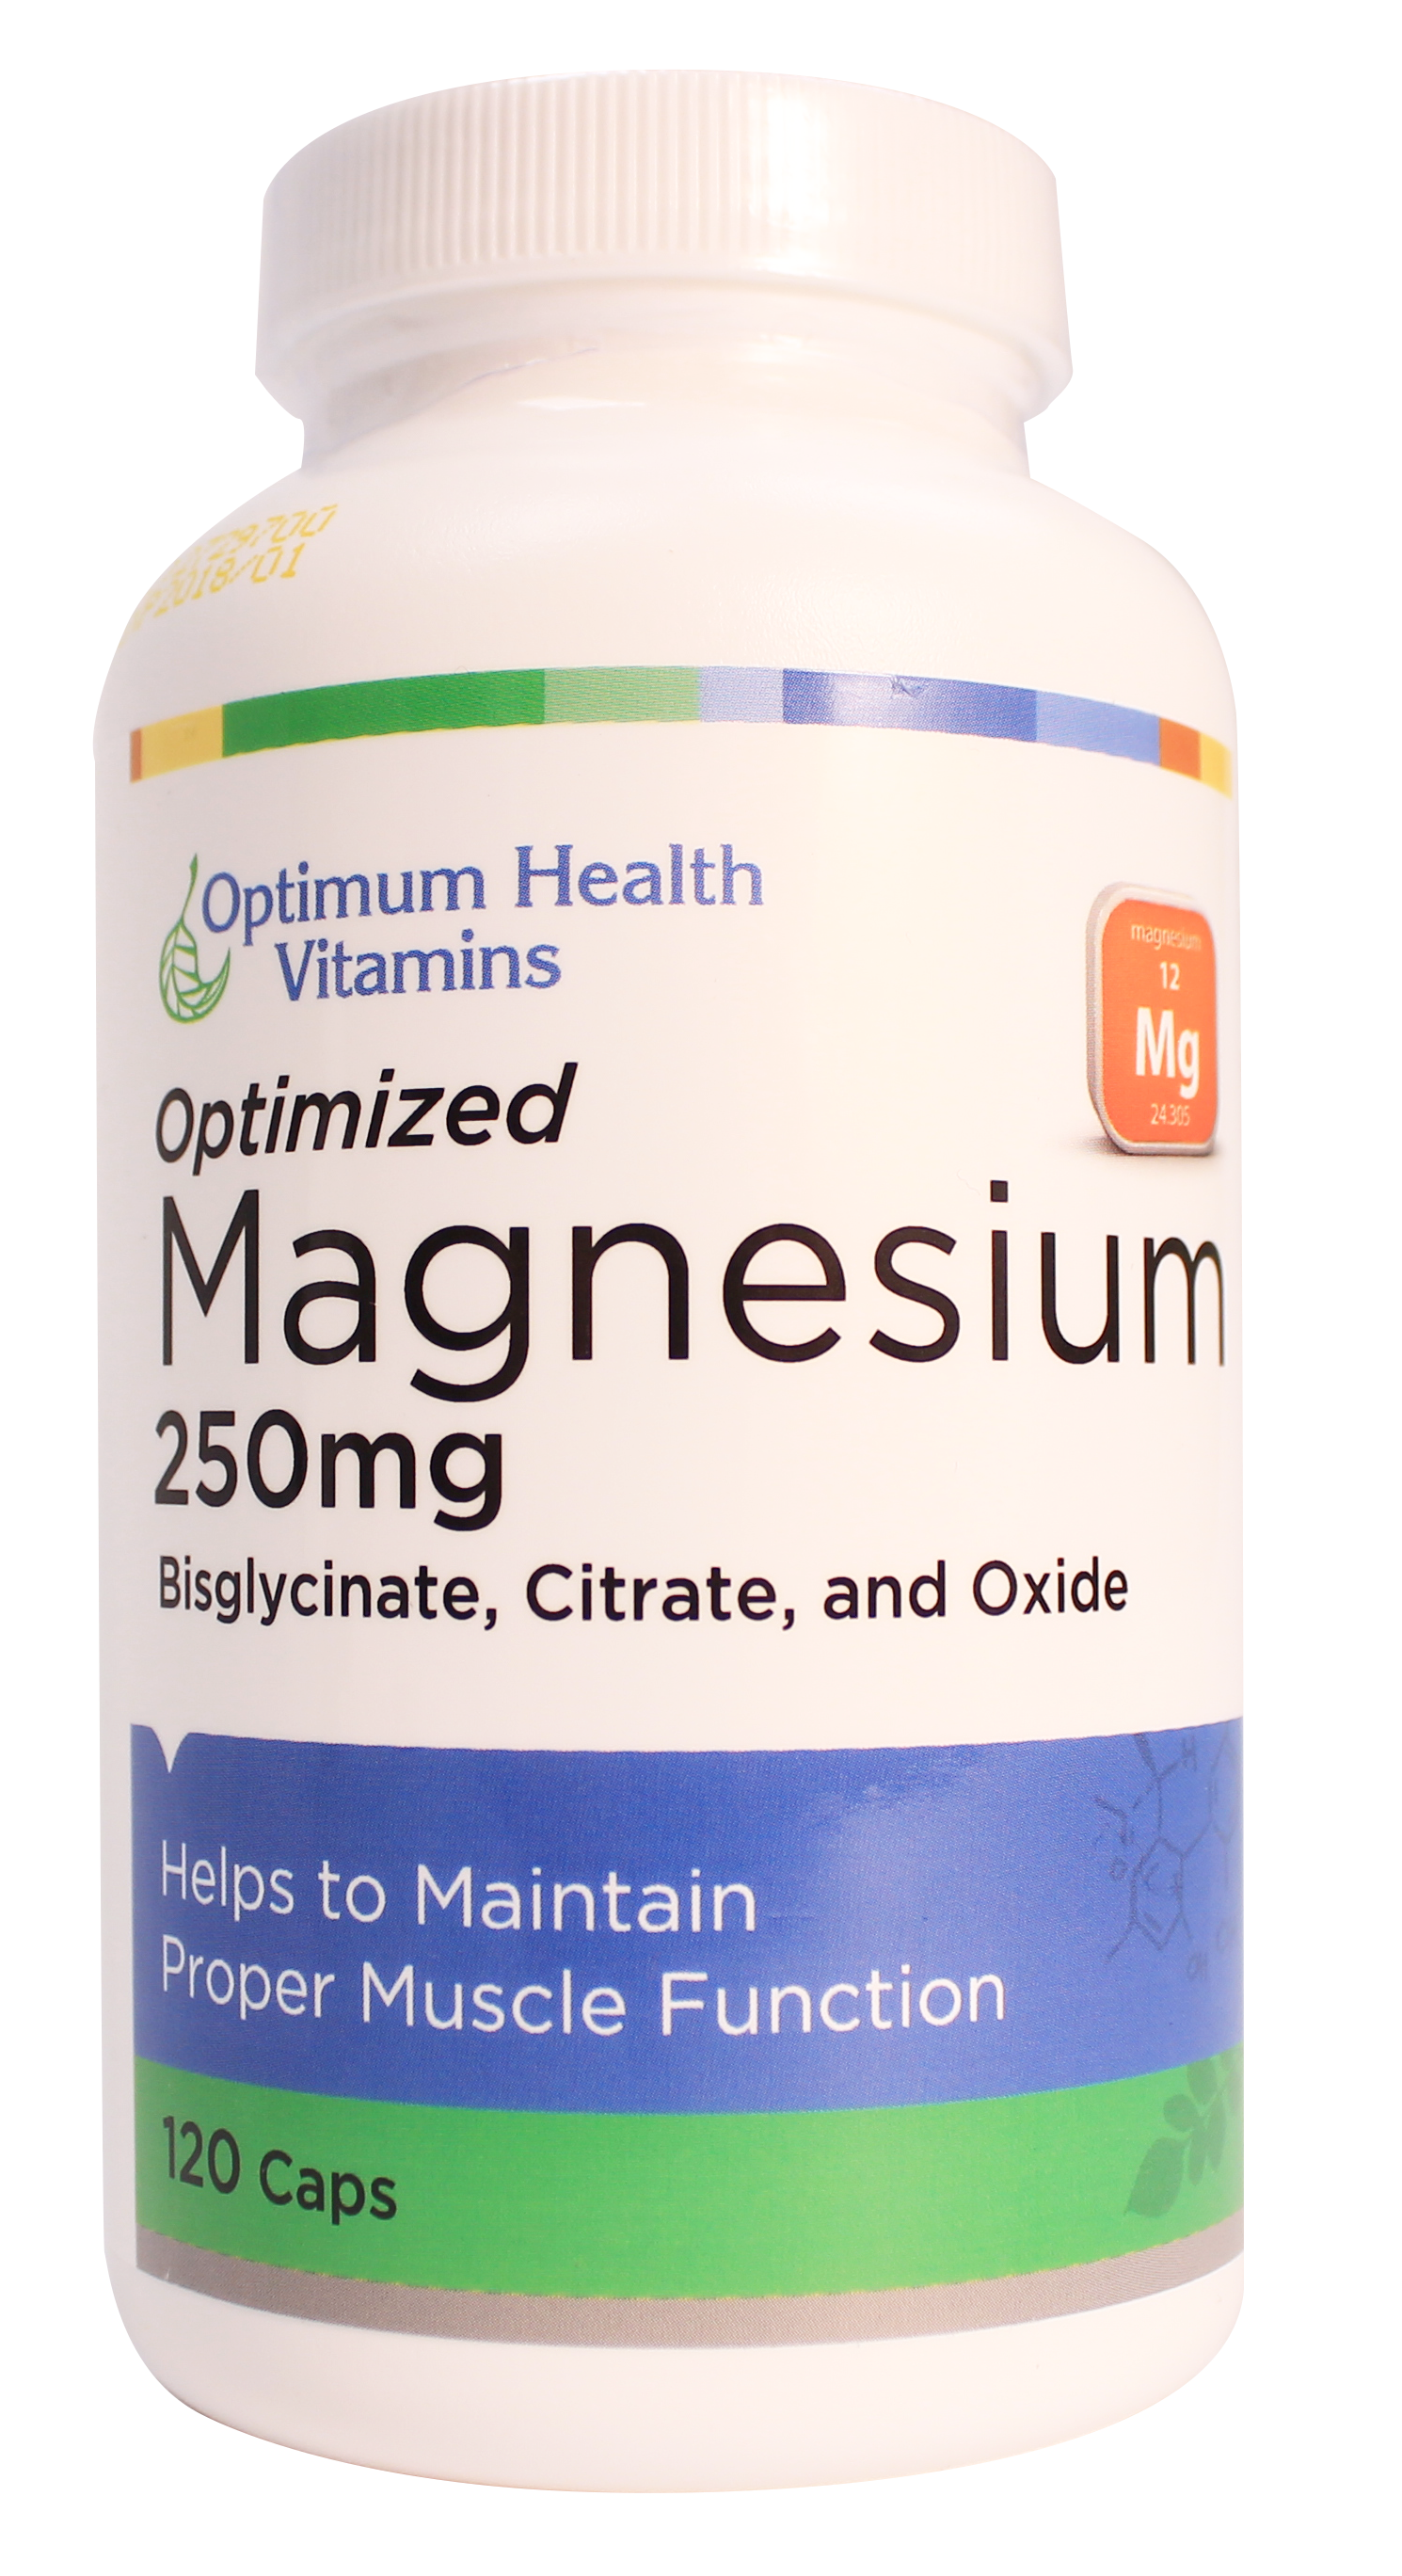 Optimum Health Vitamins Optimized Magnesium